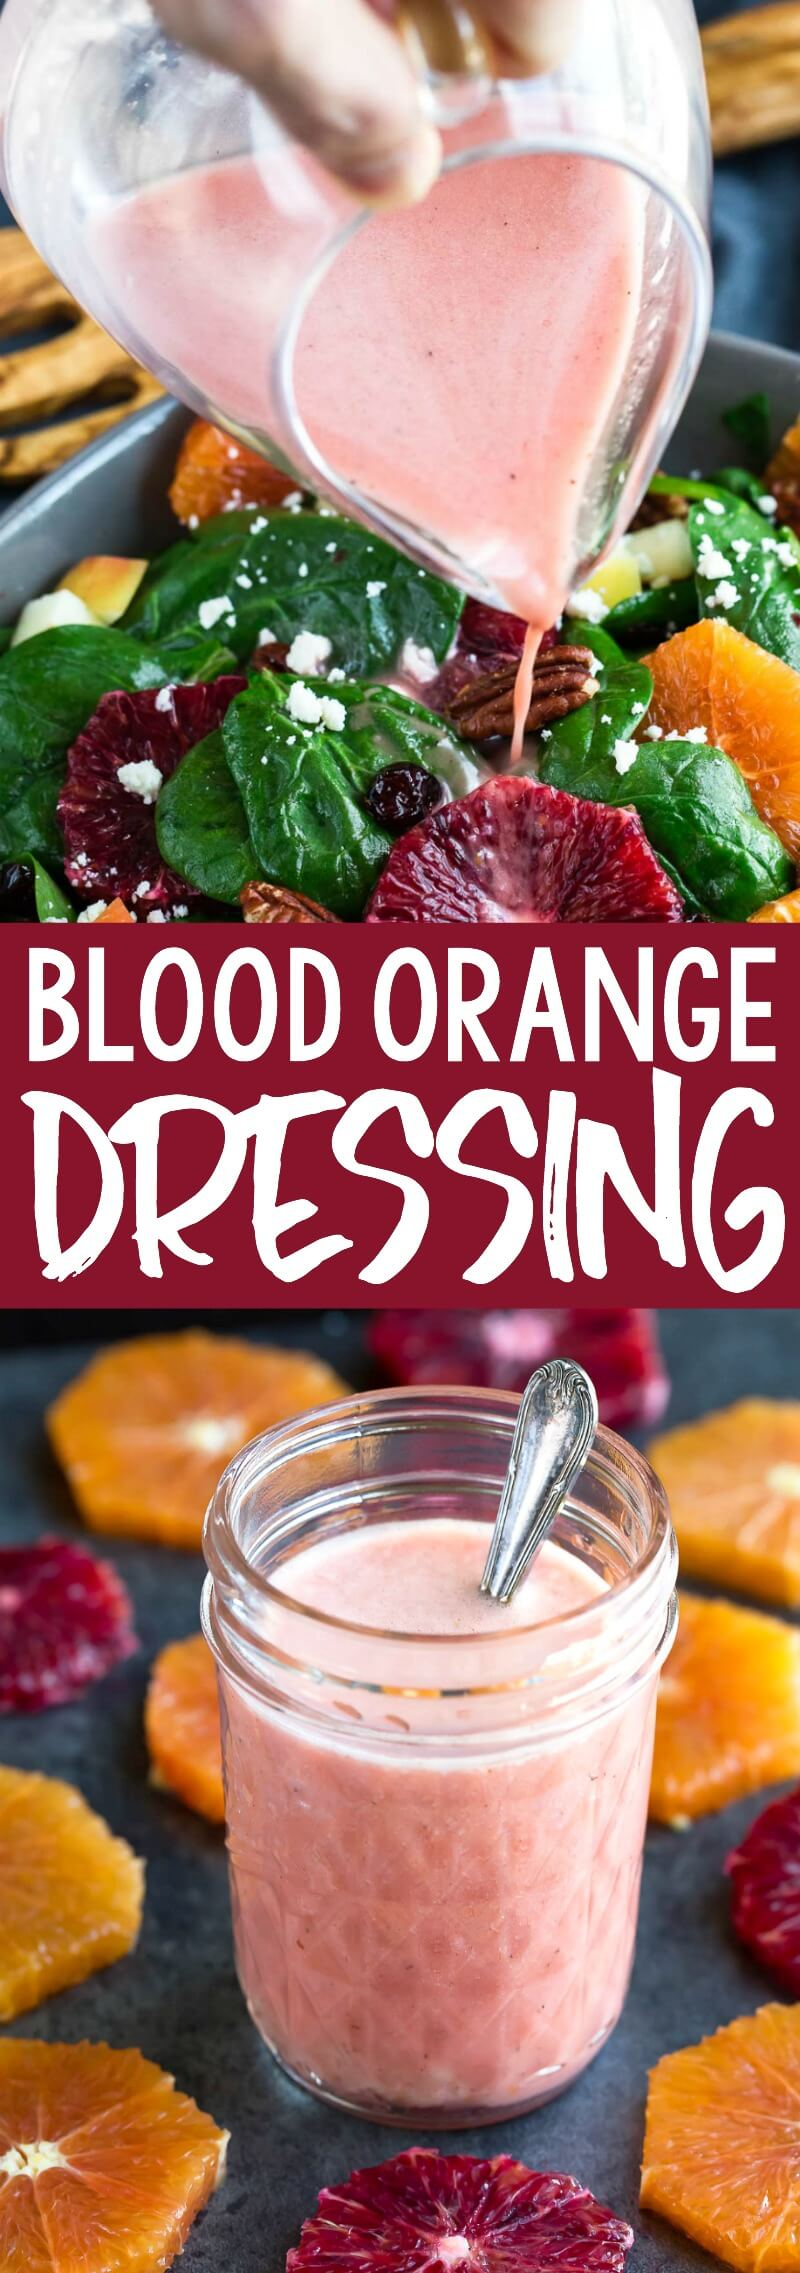 Jazz up your cool-weather salads with this deliciously easy Blood Orange Dressing! The ingredients are simple yet flavorful and ready to rock your salad! #dressing #saladdressing #bloodorange #orange #glutenfree #citrus #winterrecipes #salad #vegetarian